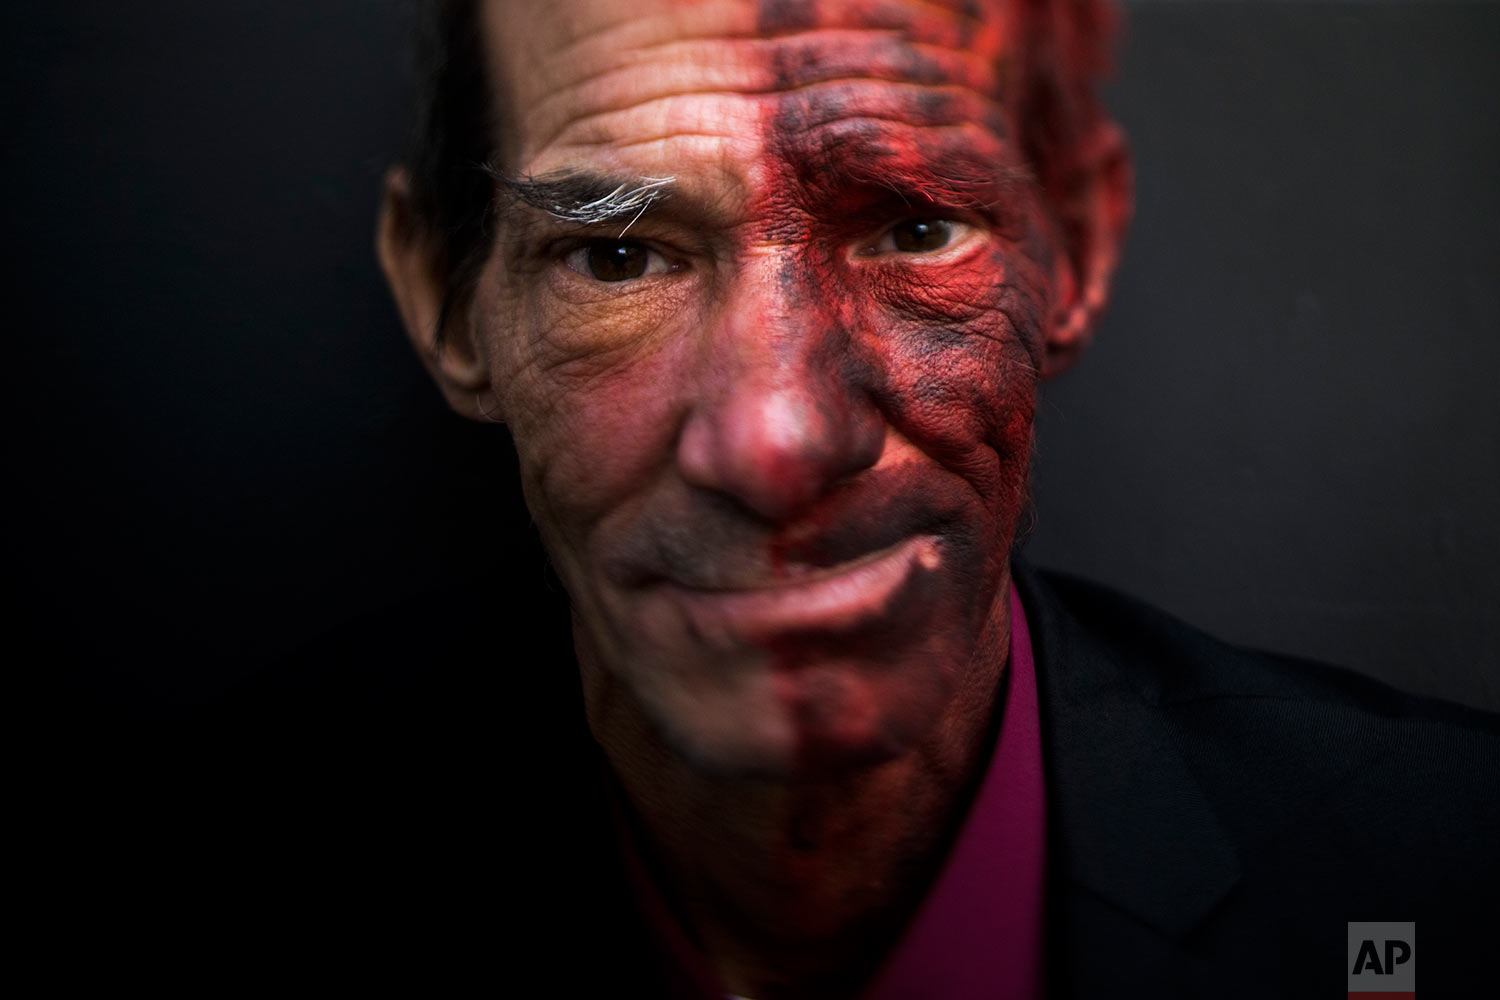 """James Harris, 54, pauses for photos Tuesday, Oct. 3, 2017, in Los Angeles. """"I'm currently dressed up as Two-Face. I'm tired of panhandling. I'm not making money as a panhandler when I need food and supplies,"""" said Harris who has been homeless over a year. (AP Photo/Jae C. Hong)"""